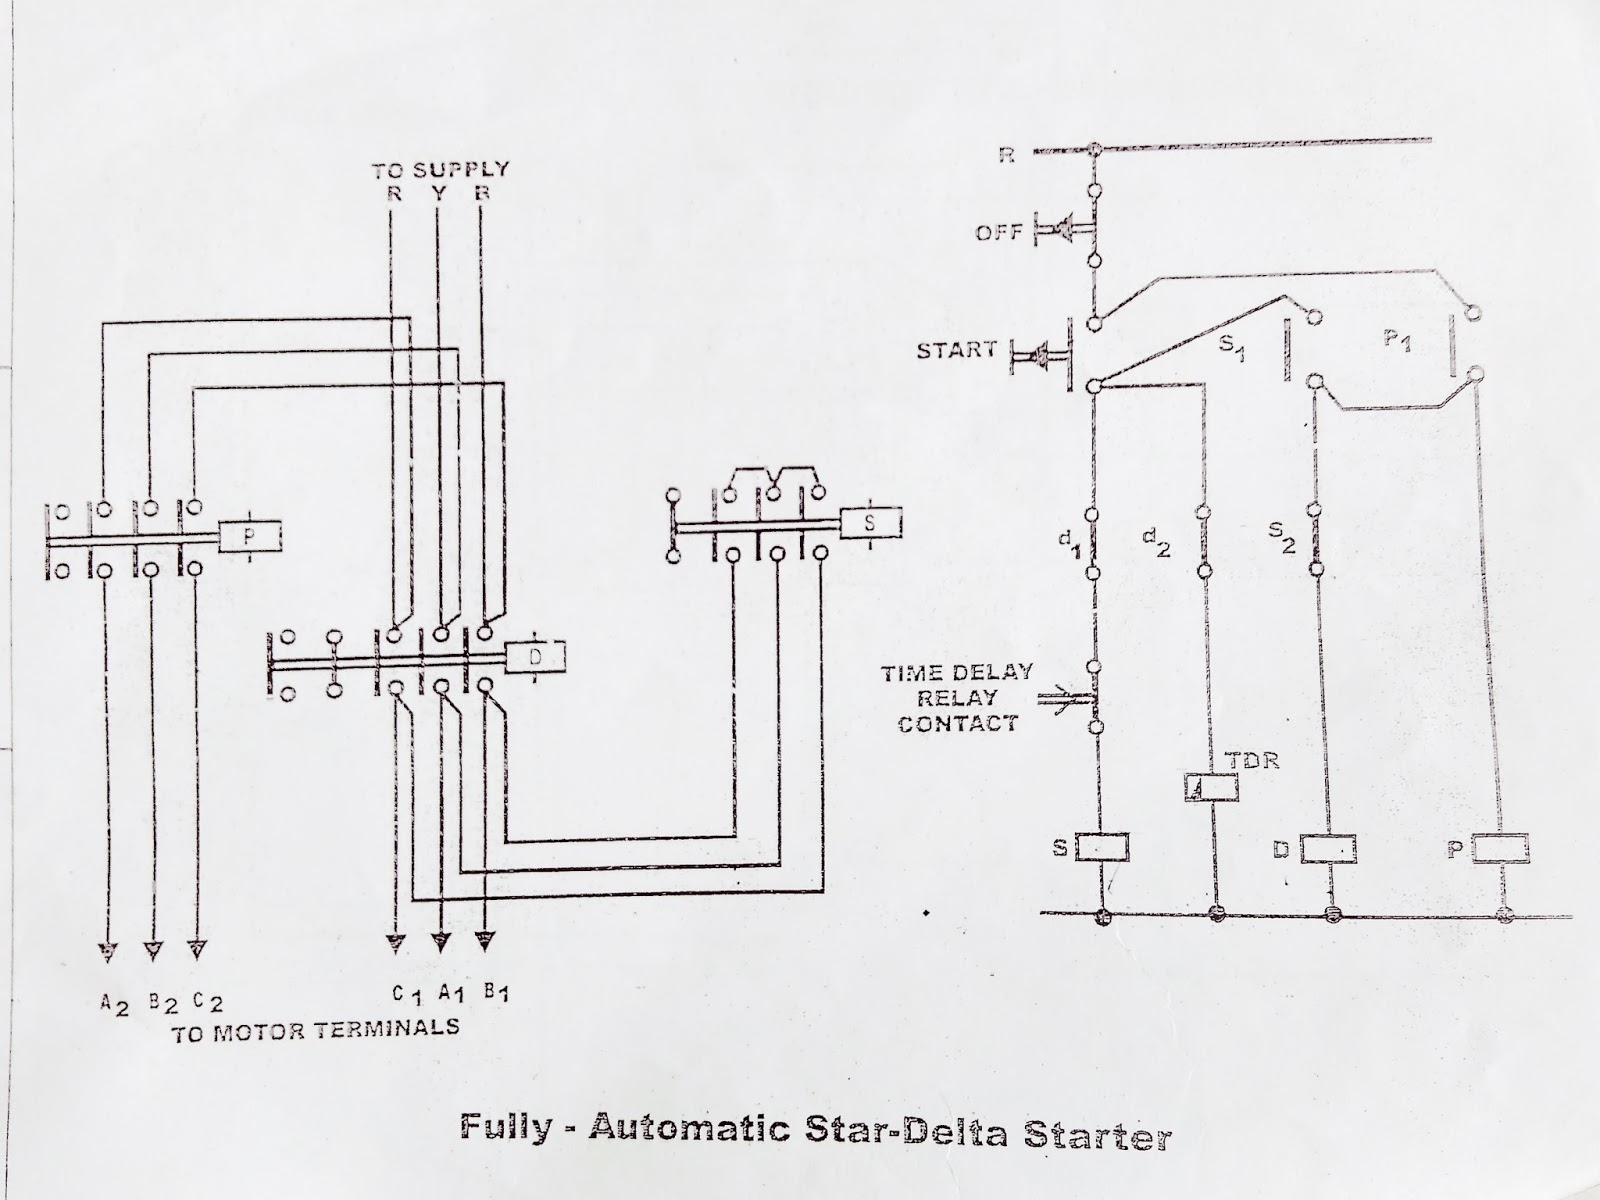 Star Delta Starter control diagram working principle